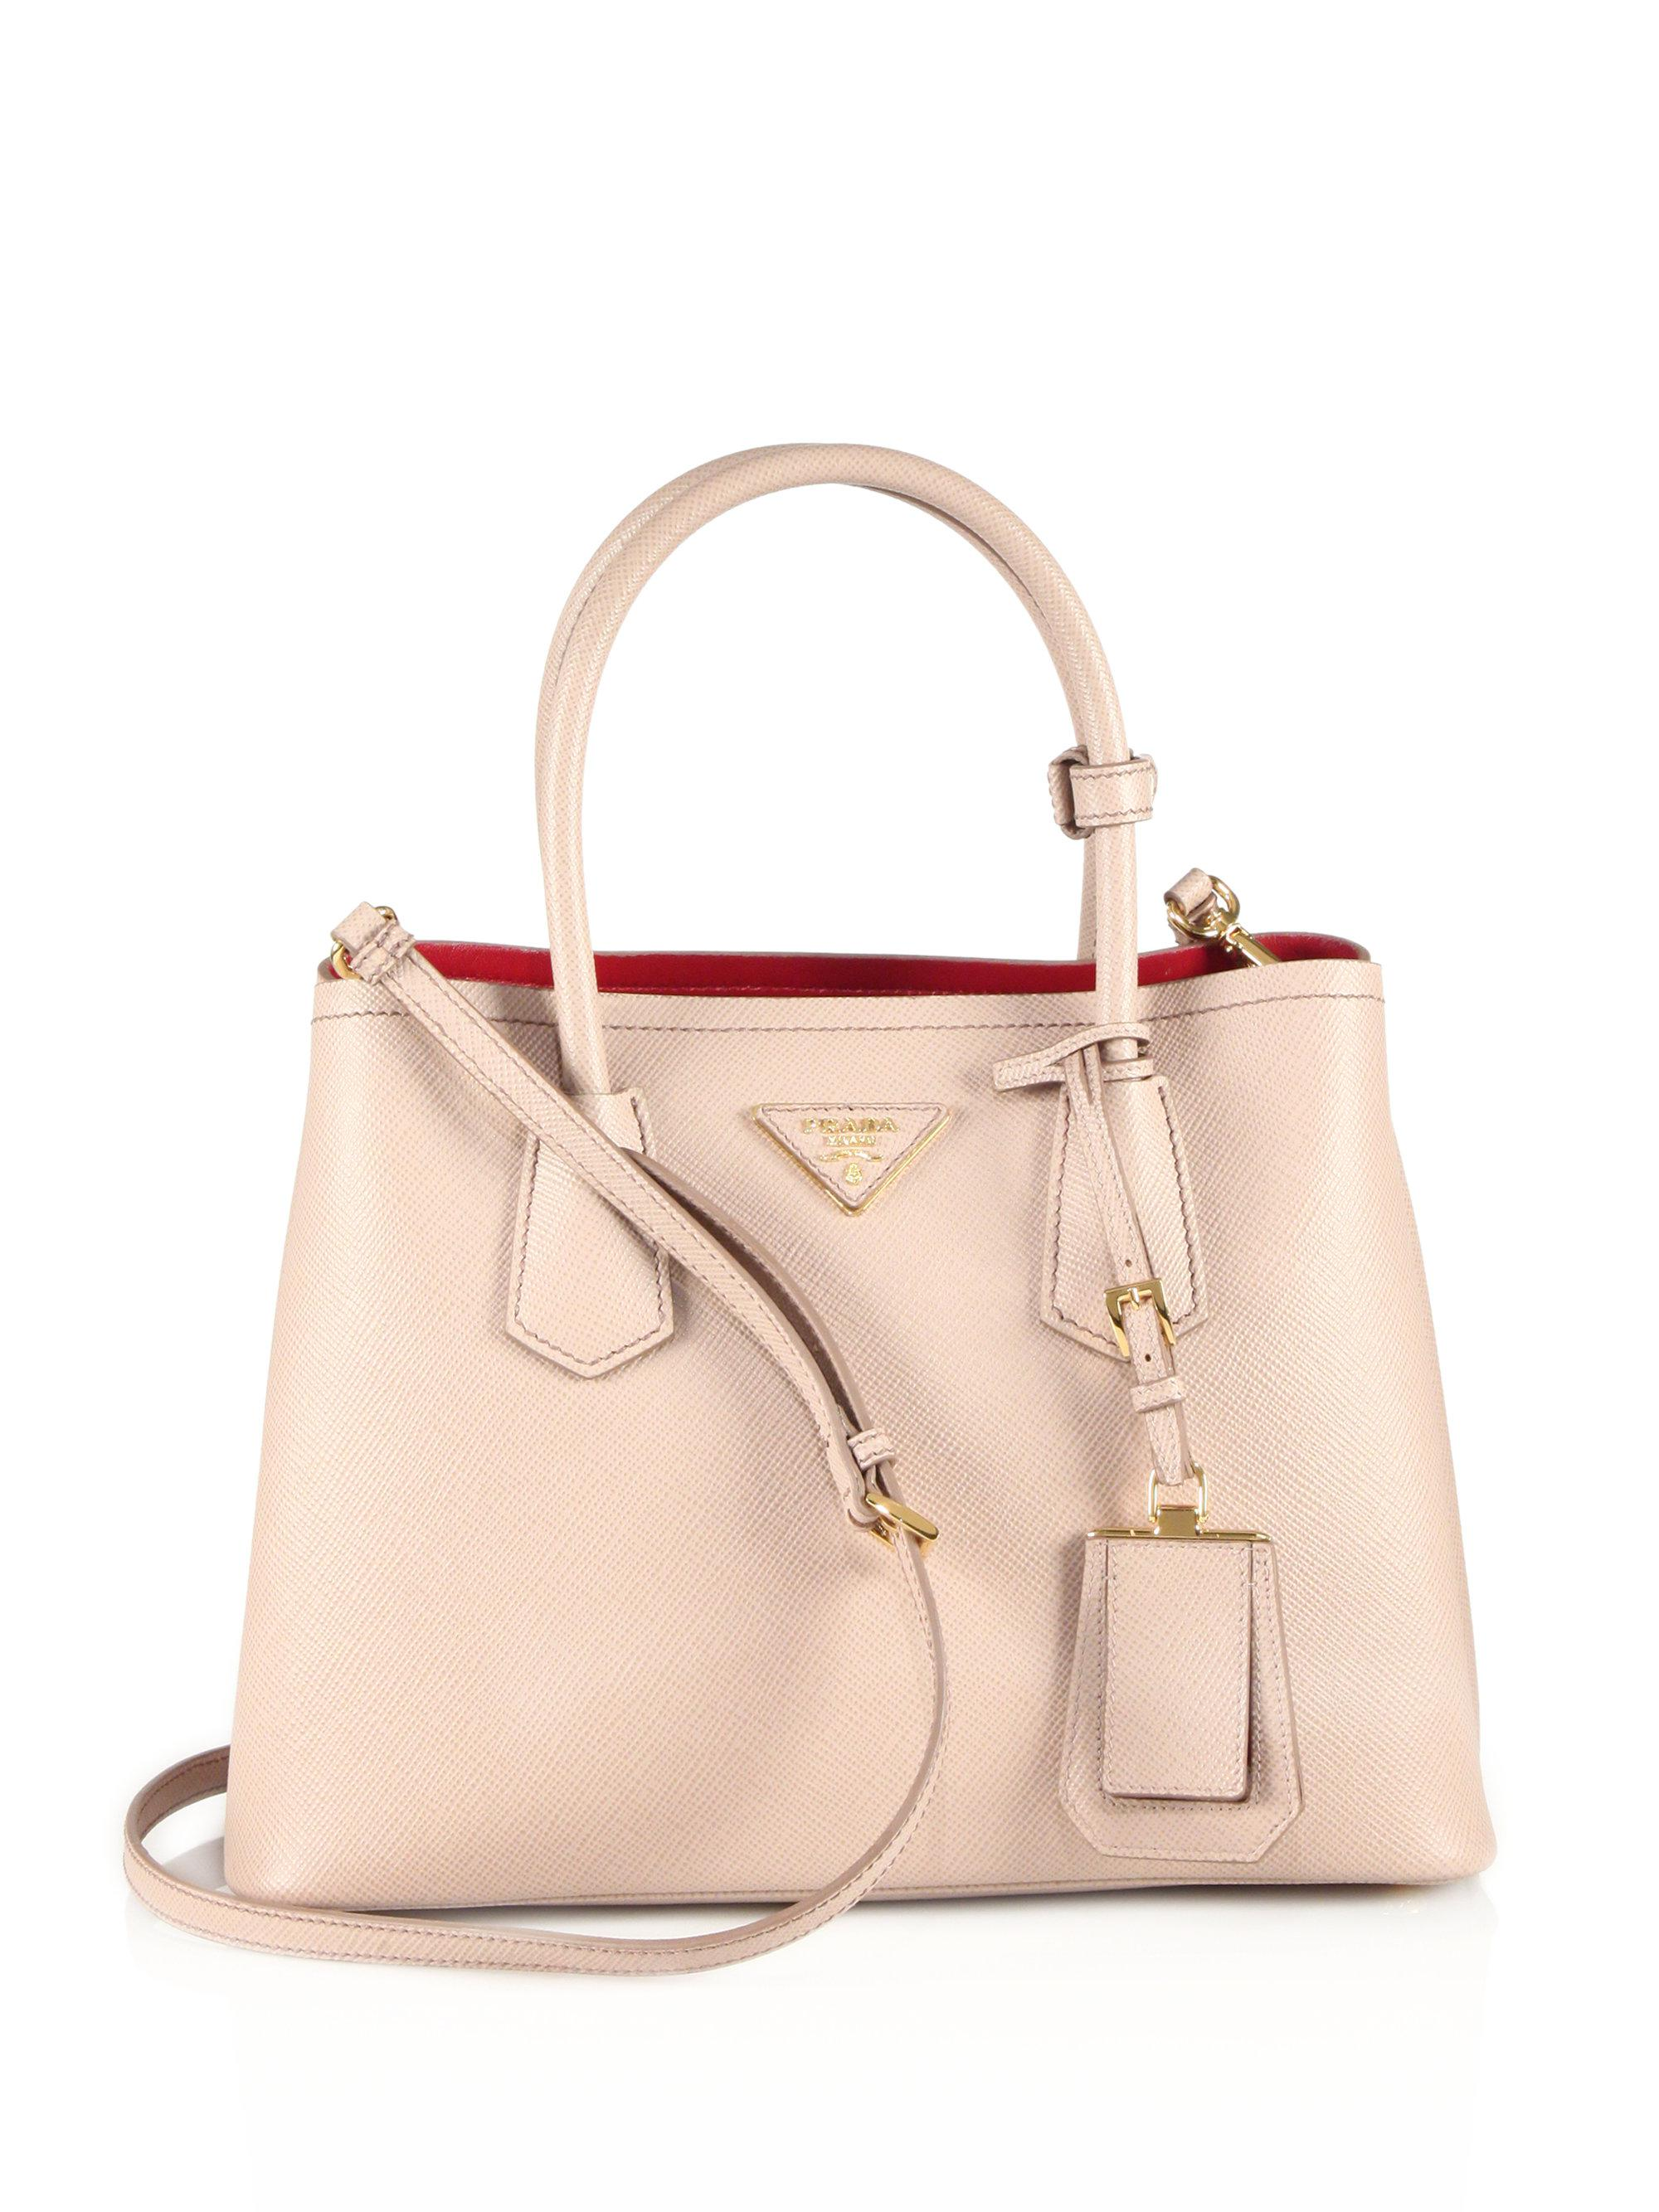 9980e0b4da6d where to buy pradadoublebagsydneysfashiondiary 31f0c f0fb6  where to buy  lyst prada saffiano cuir small double bag in natural 88a85 f7720